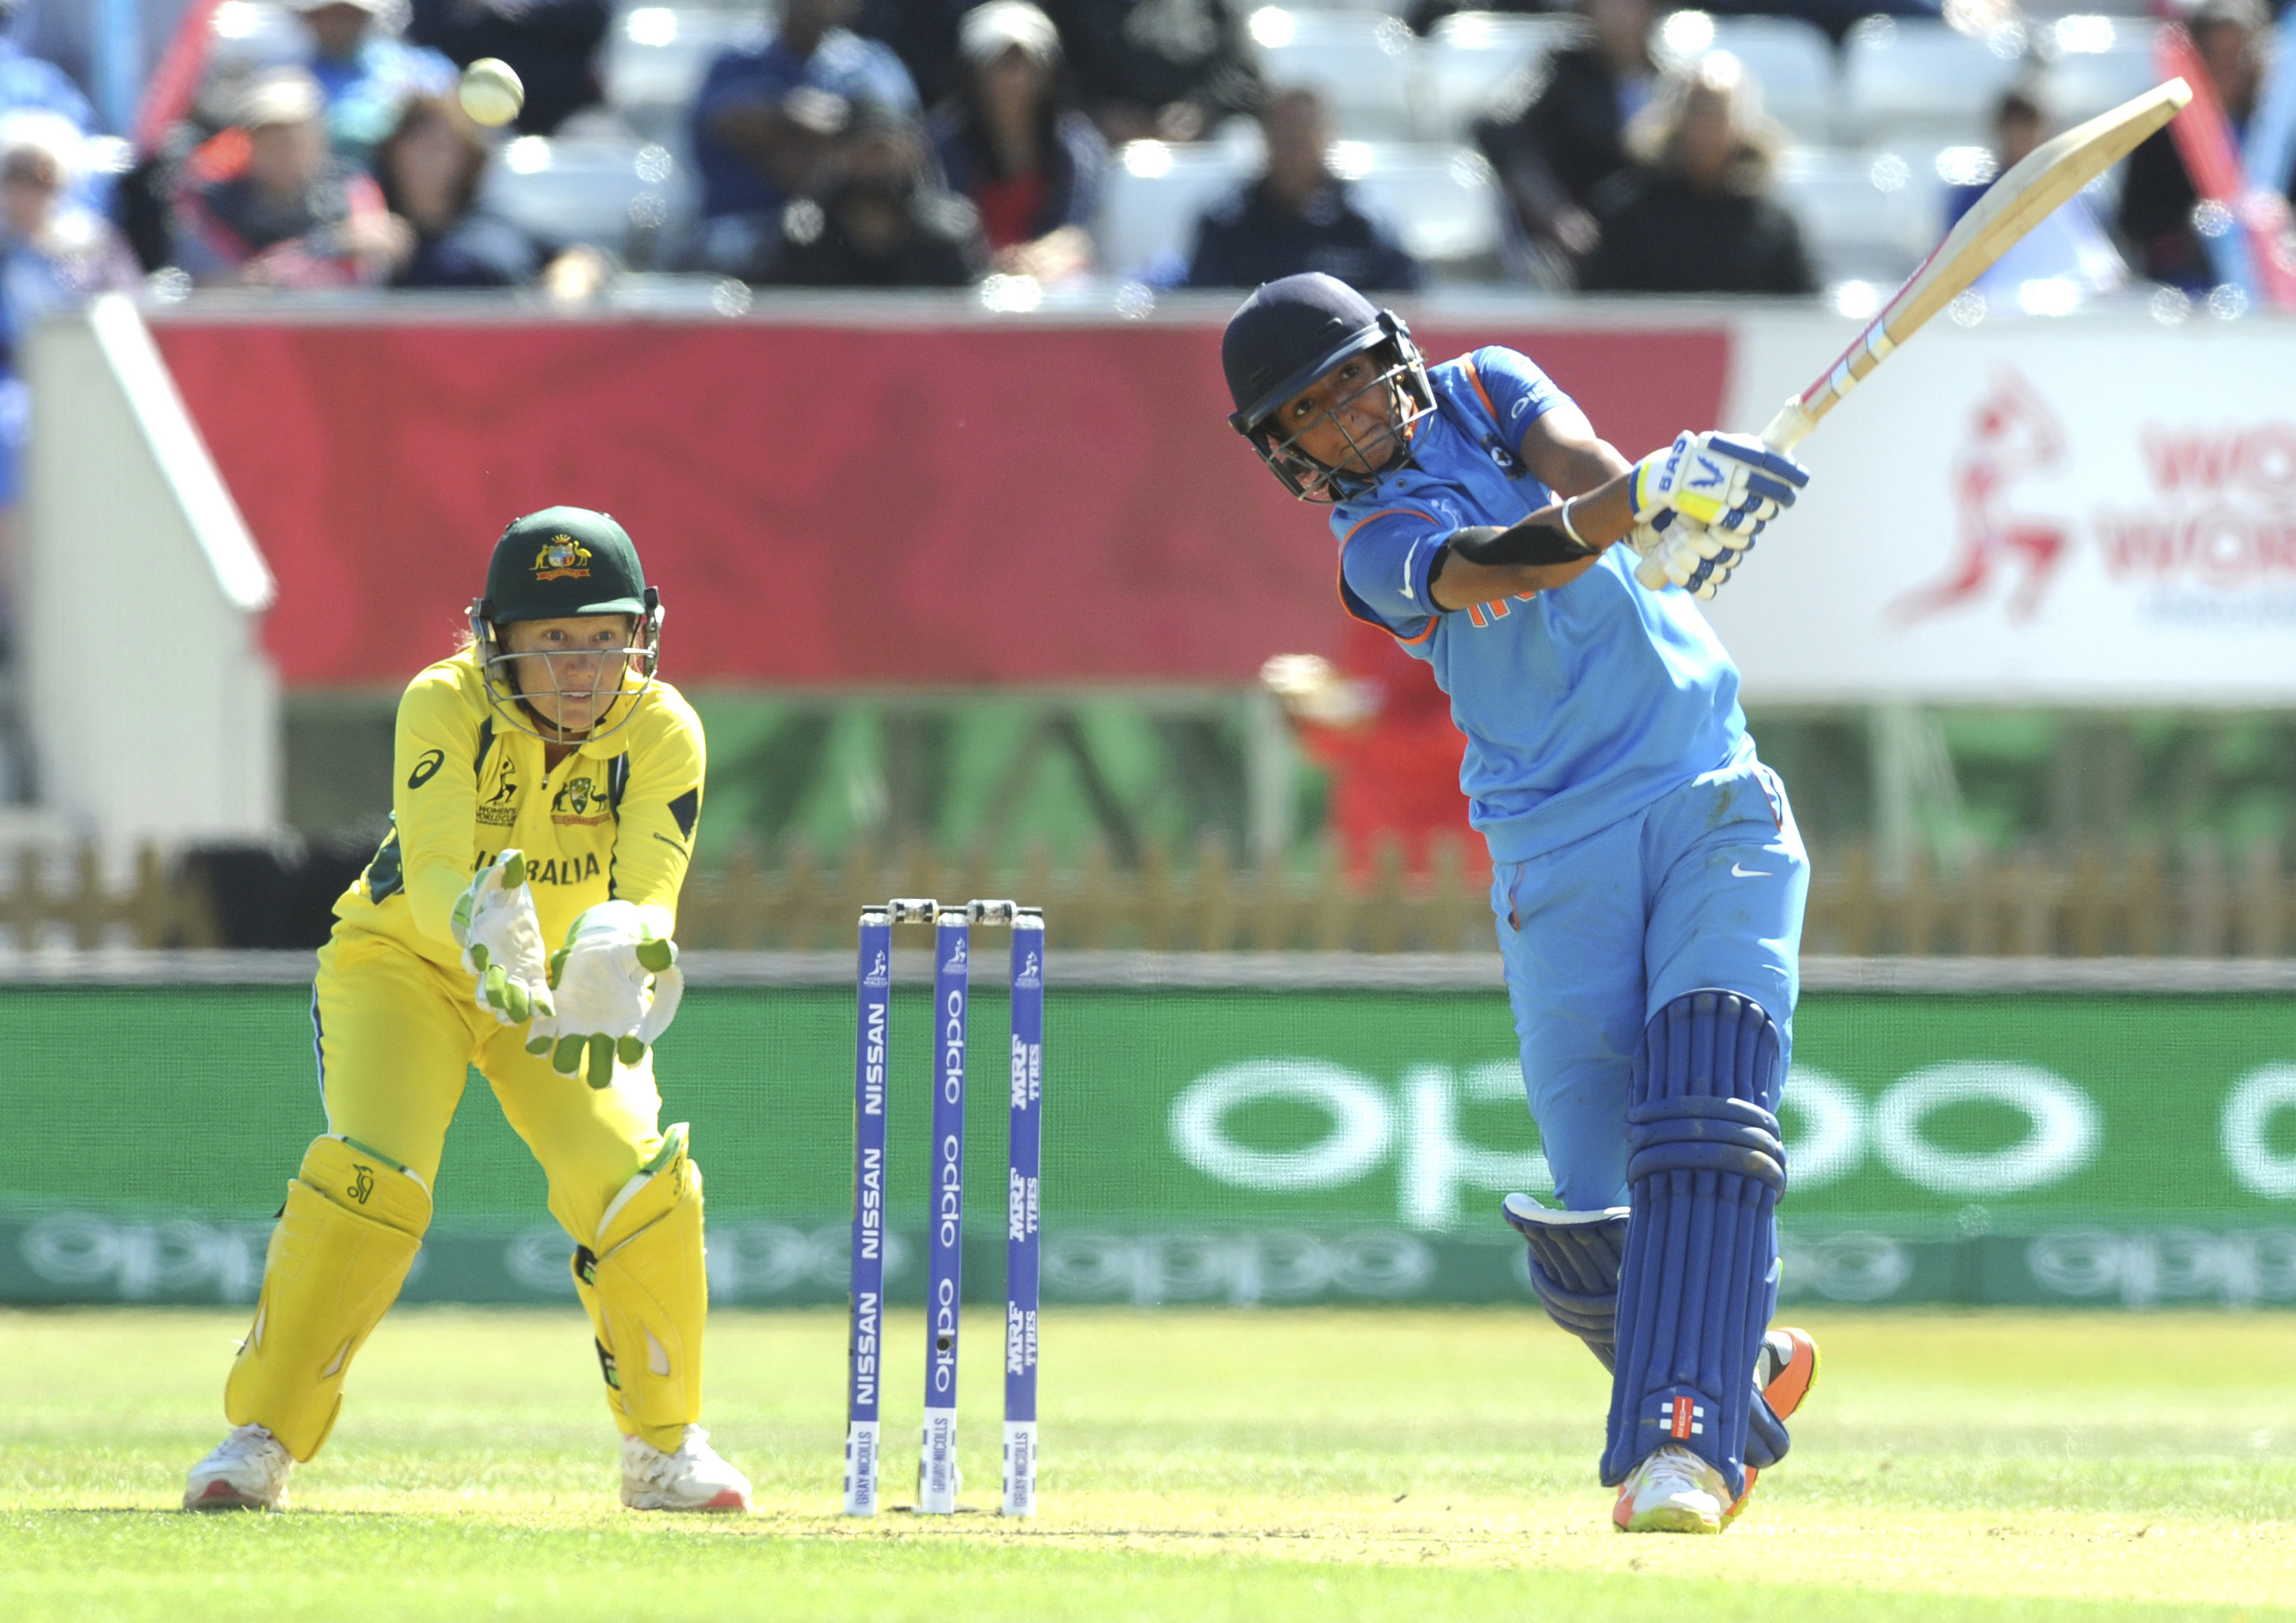 India's Harmanpreet Kaur plays against Australia